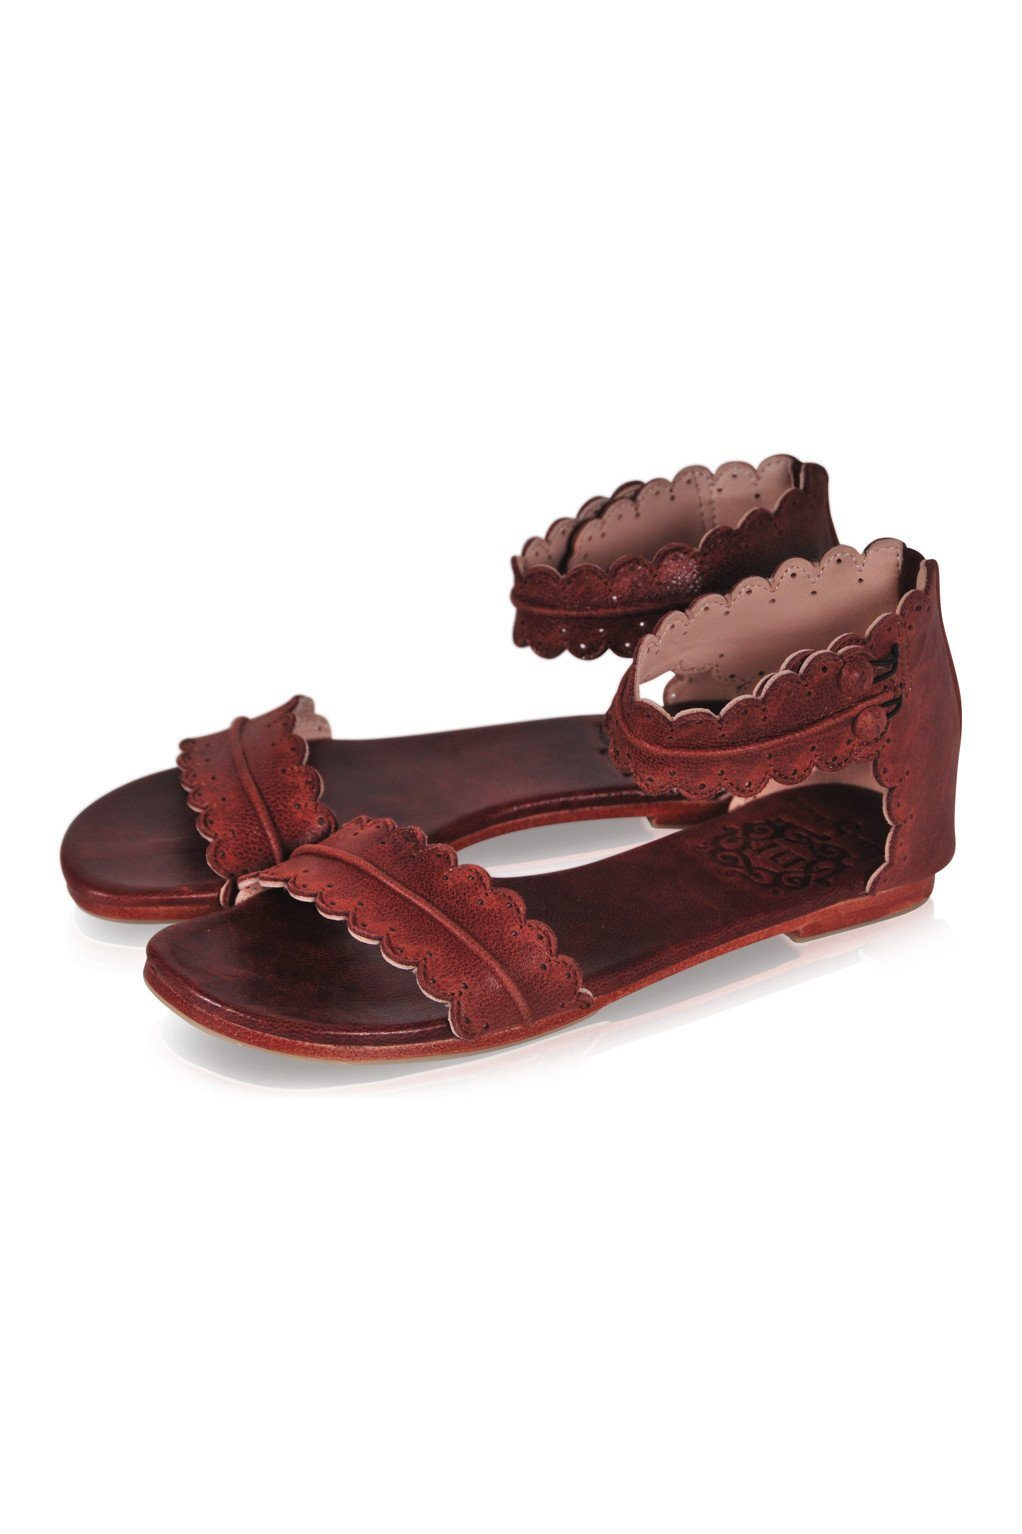 Etro Sandal Brown Leather Z0Eqe5Vk Fashion Shoes Hot Sale Cheapest Price Save Over 50%